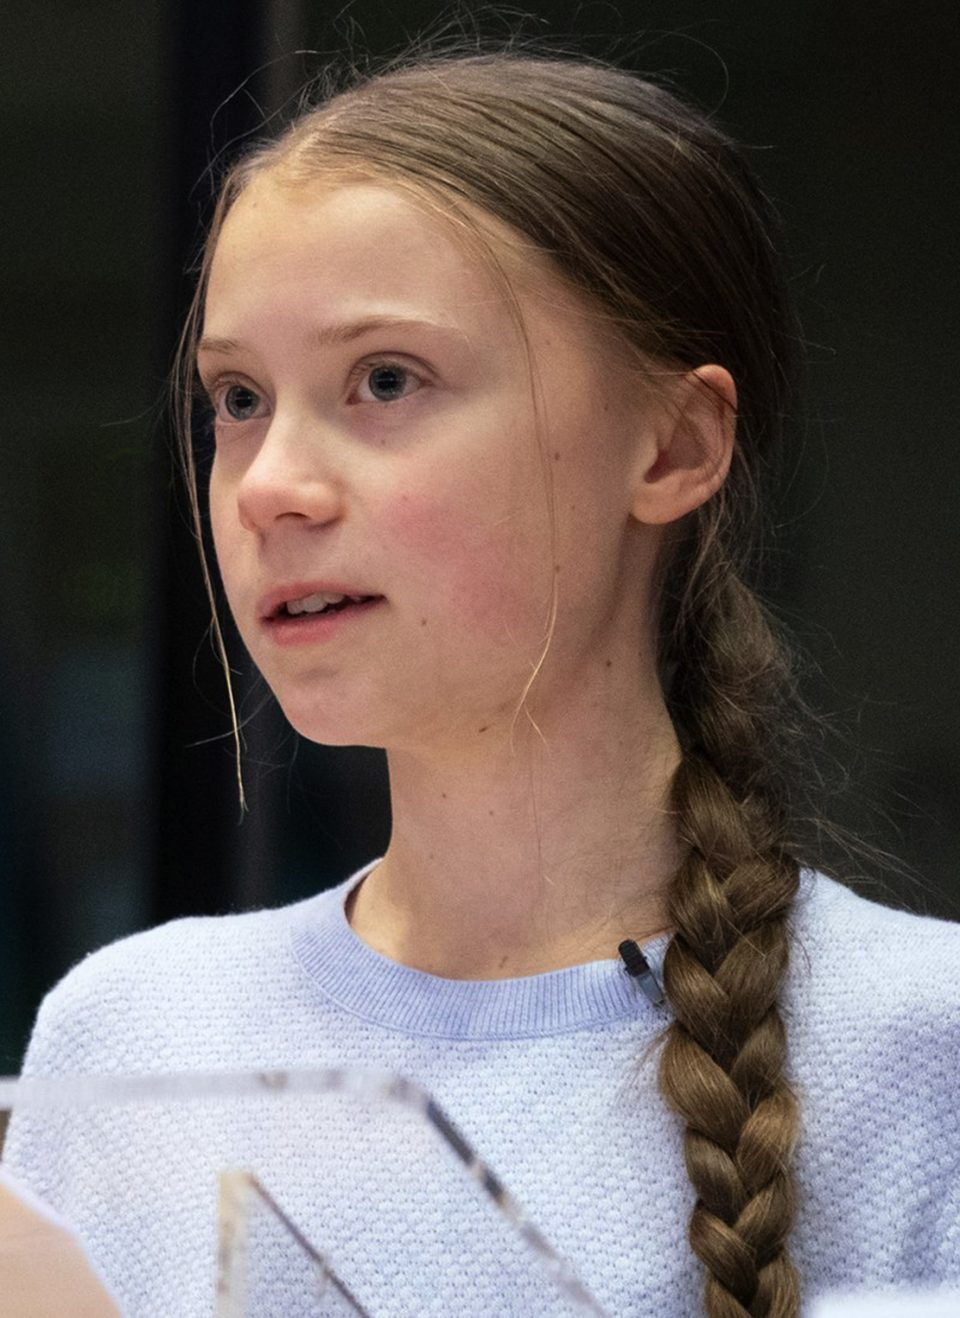 Greta_Thunberg_urges_MEPs_to_show_climate_leadership_49618310531_cropped-960x1318